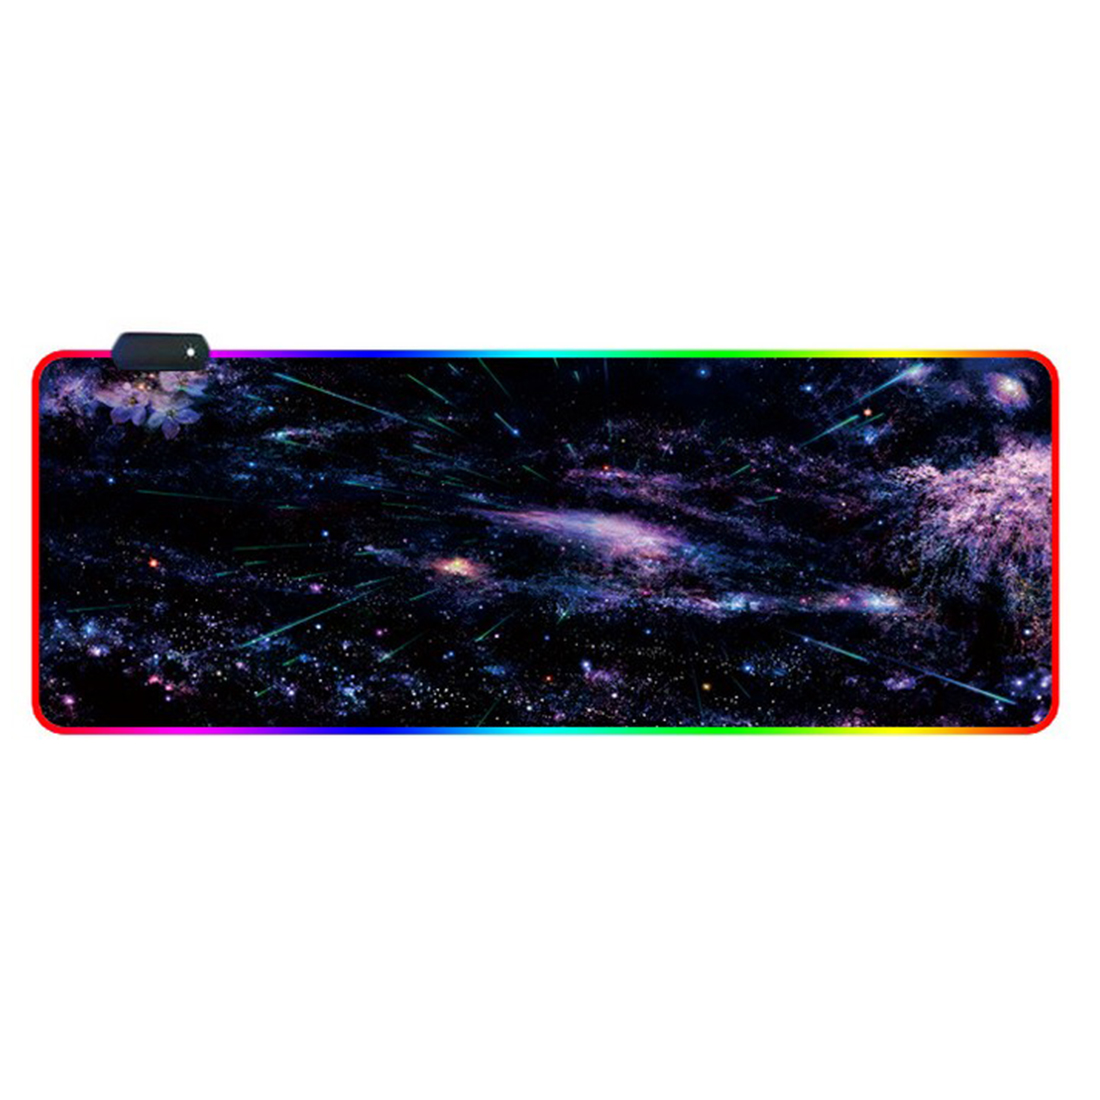 RGB Luminous Gaming Mouse Pad Colorful Oversized Desk Mat for Mechanical Keyboard Mouse - Gorgeous Starry Sky